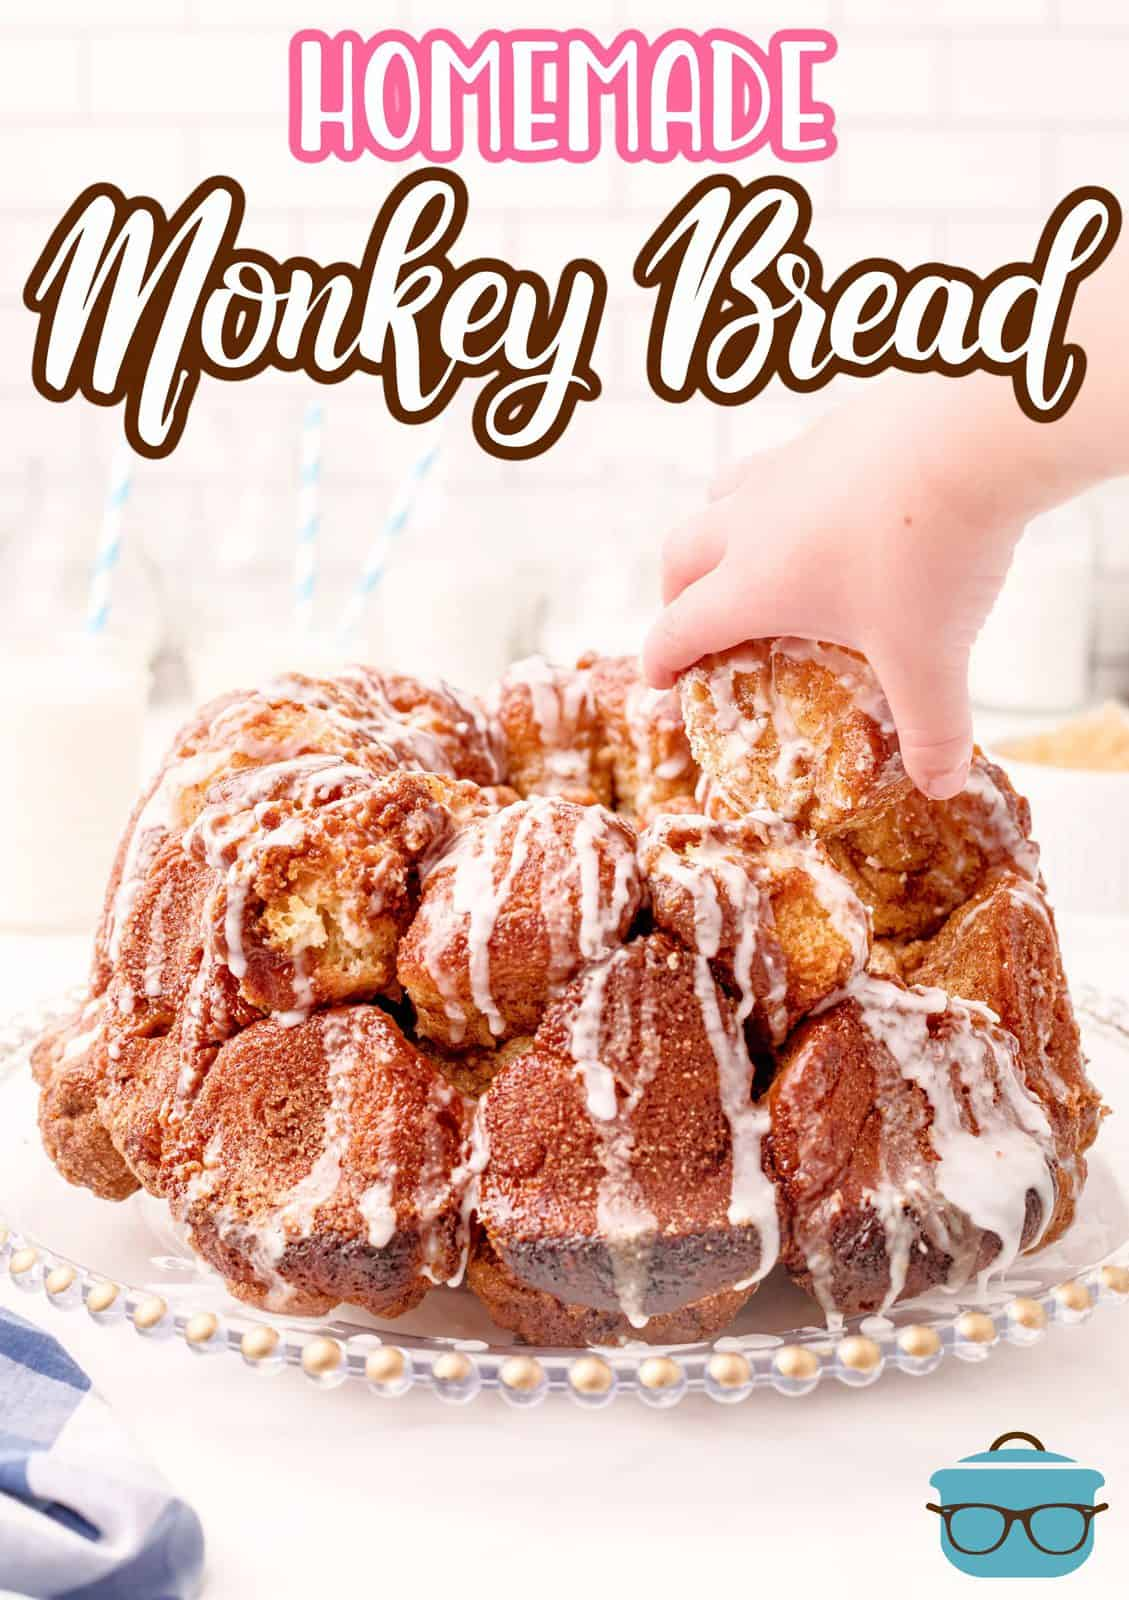 Homemade Monkey Bread on platter with hand reaching for piece Pinterest image.